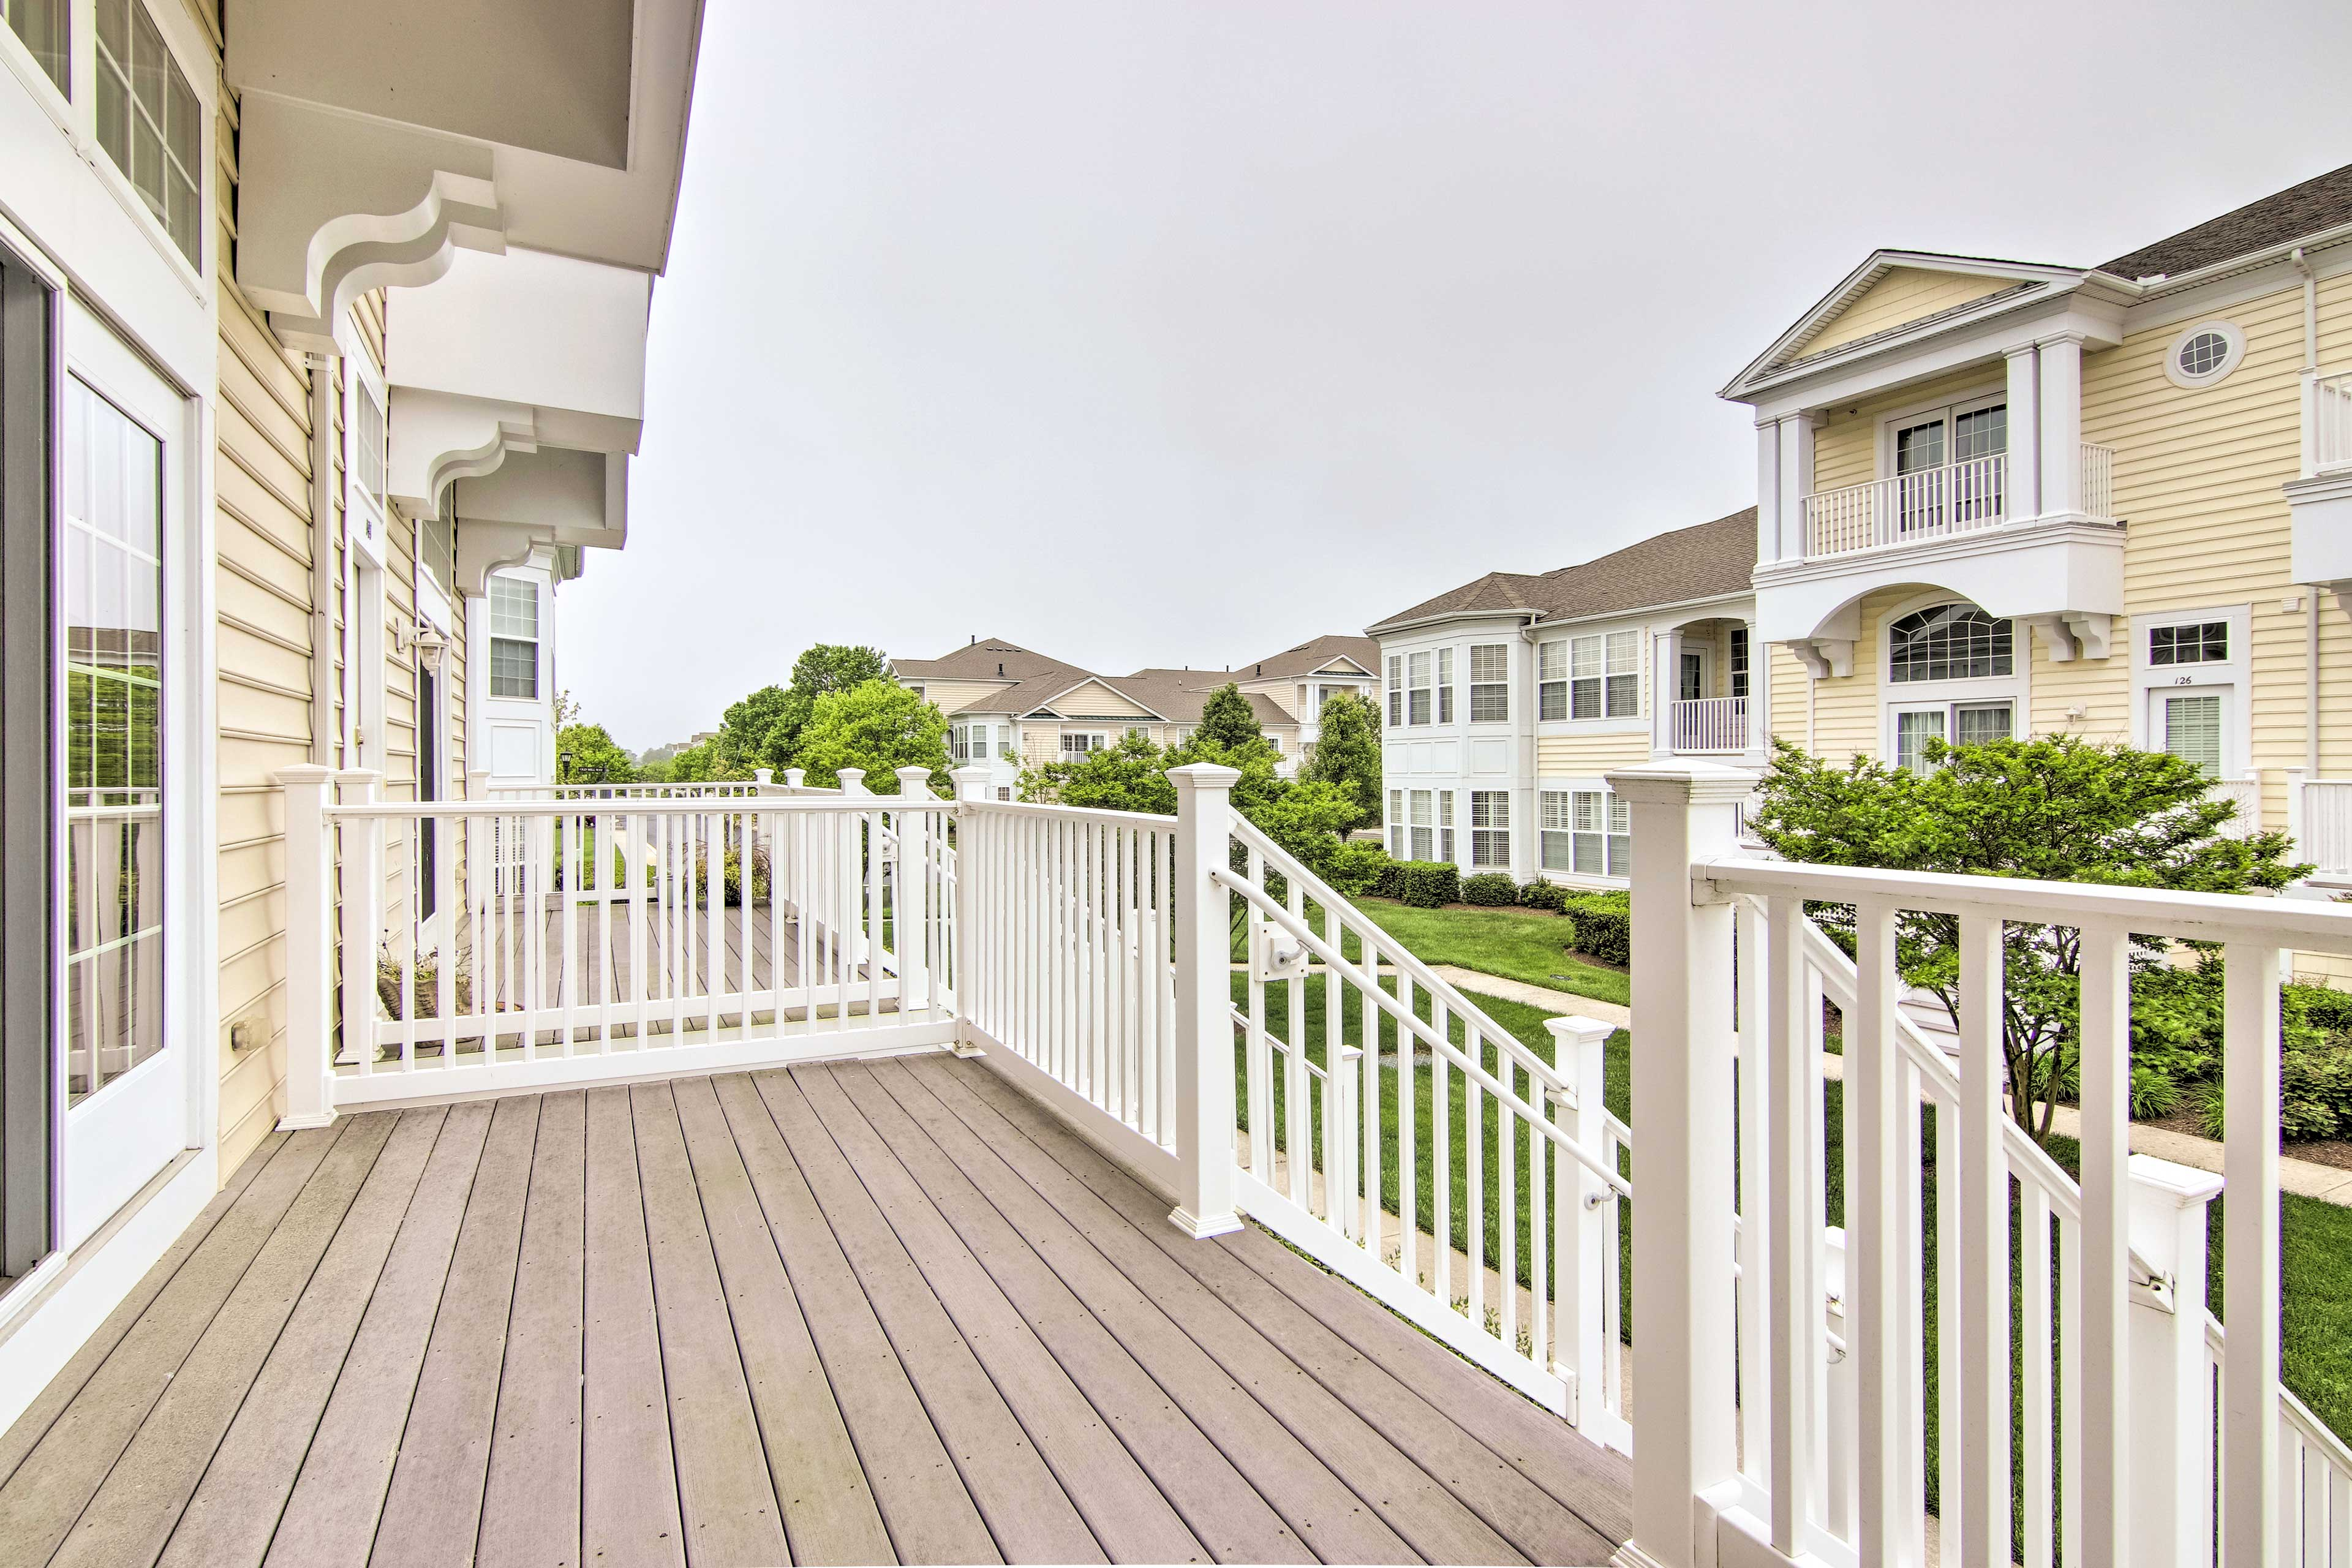 This charming towhome is located a short bike ride from the beach.